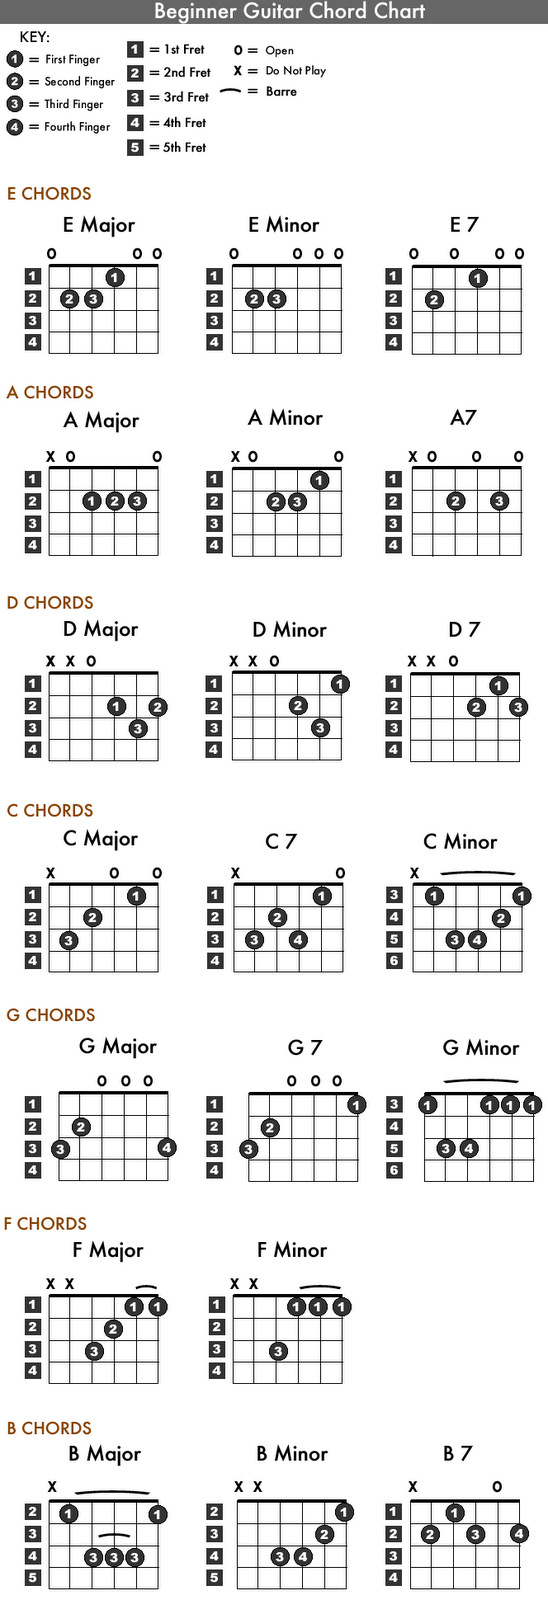 Jazz guitar lessons moon river chord melody rhythm guitar master chords and scales check out this great guitar site hexwebz Choice Image